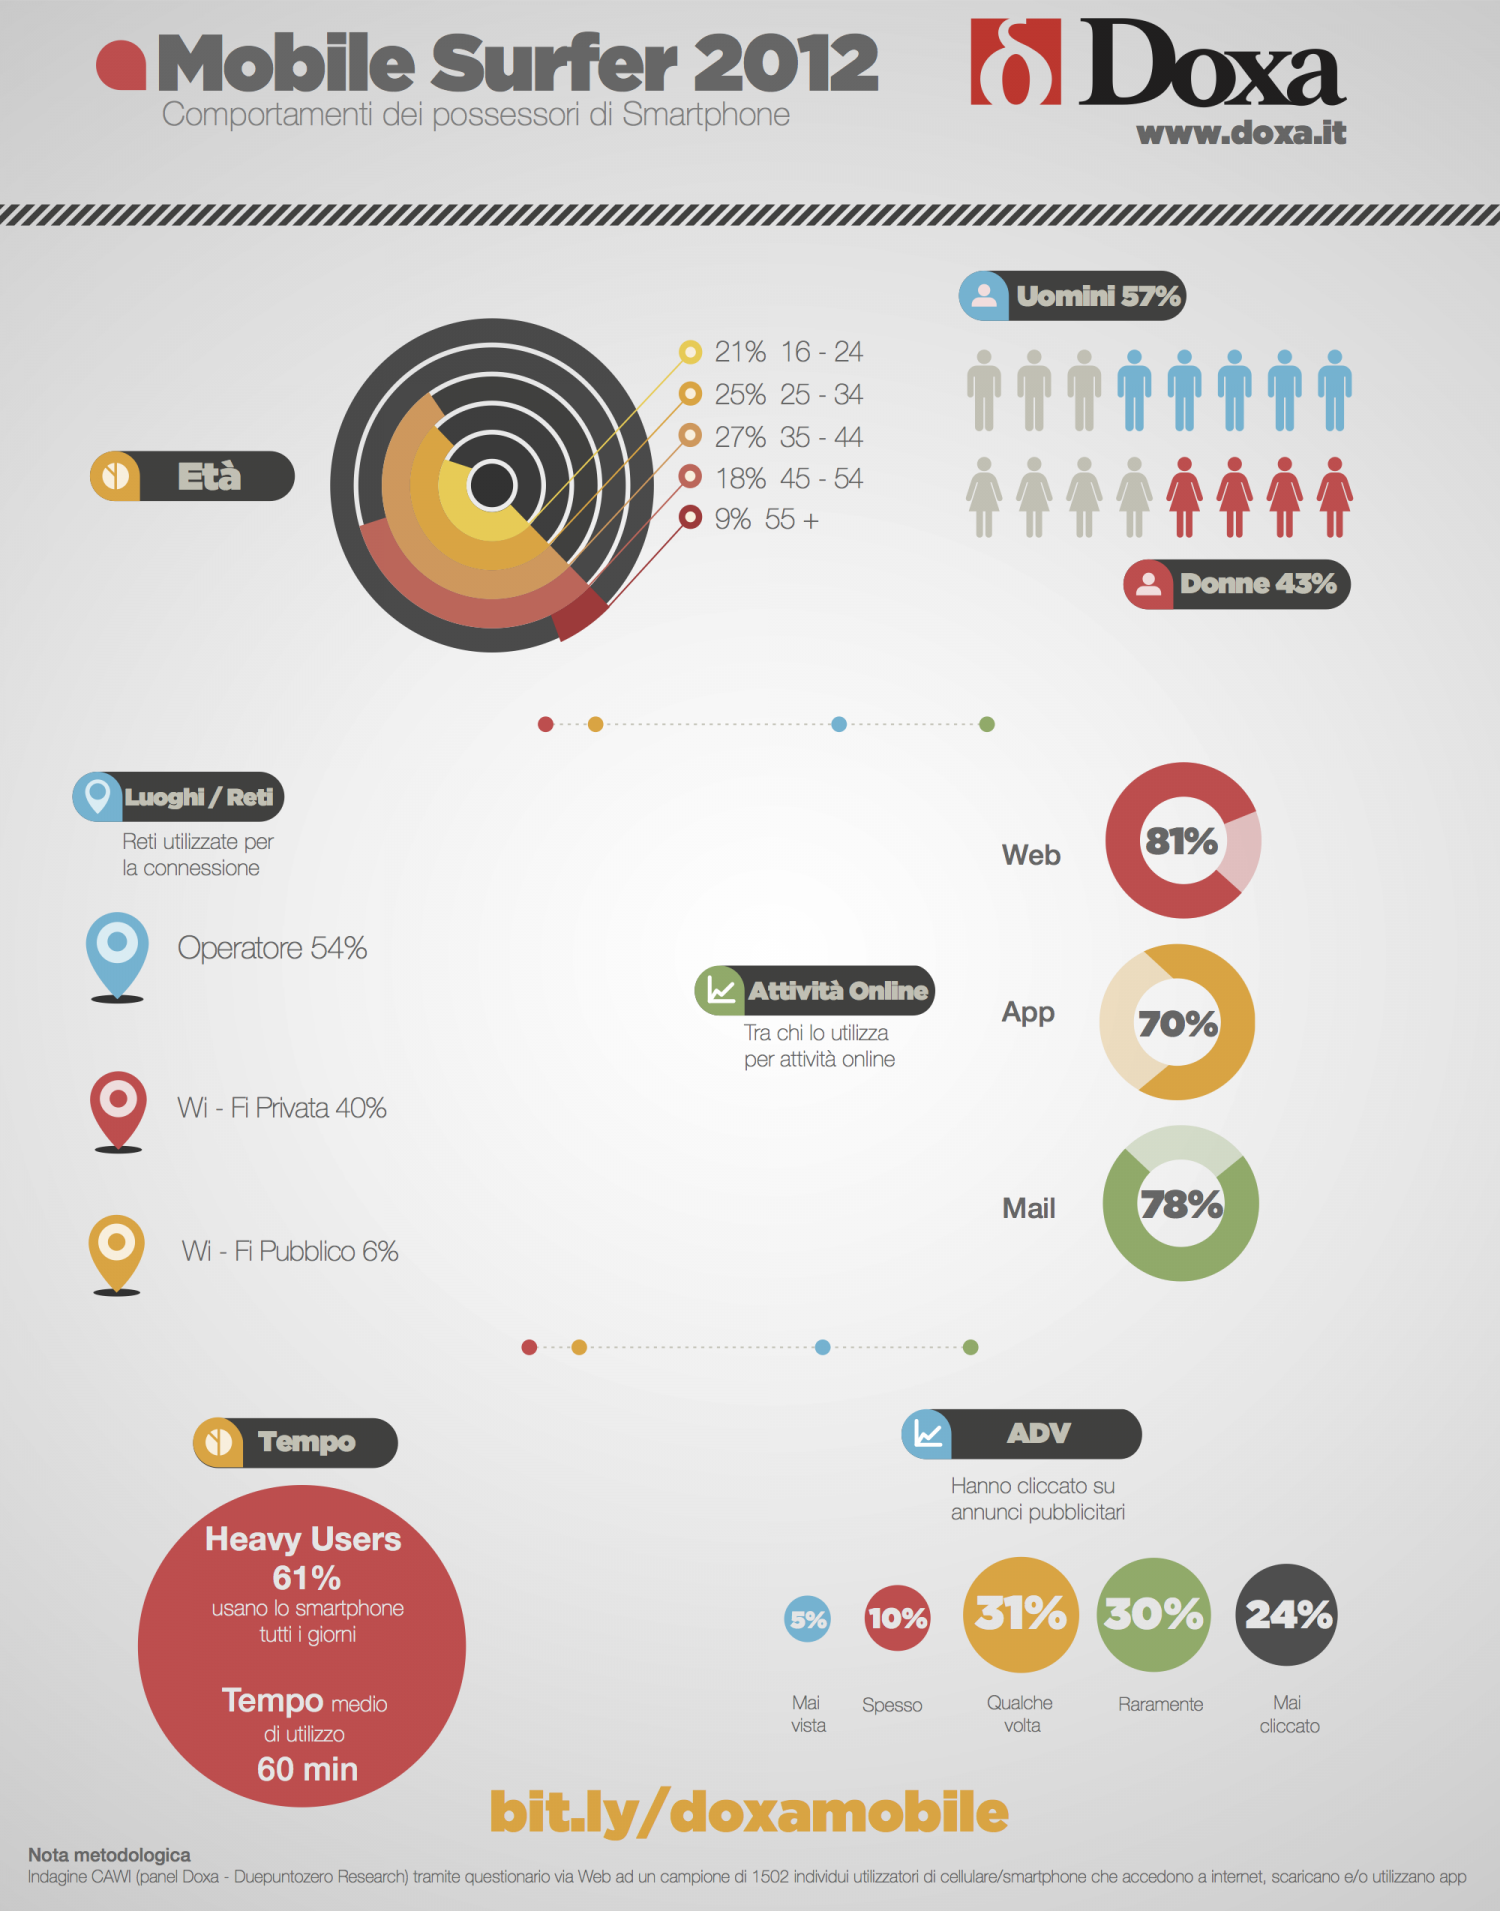 Doxa Mobile Surfer 2012 Infographic